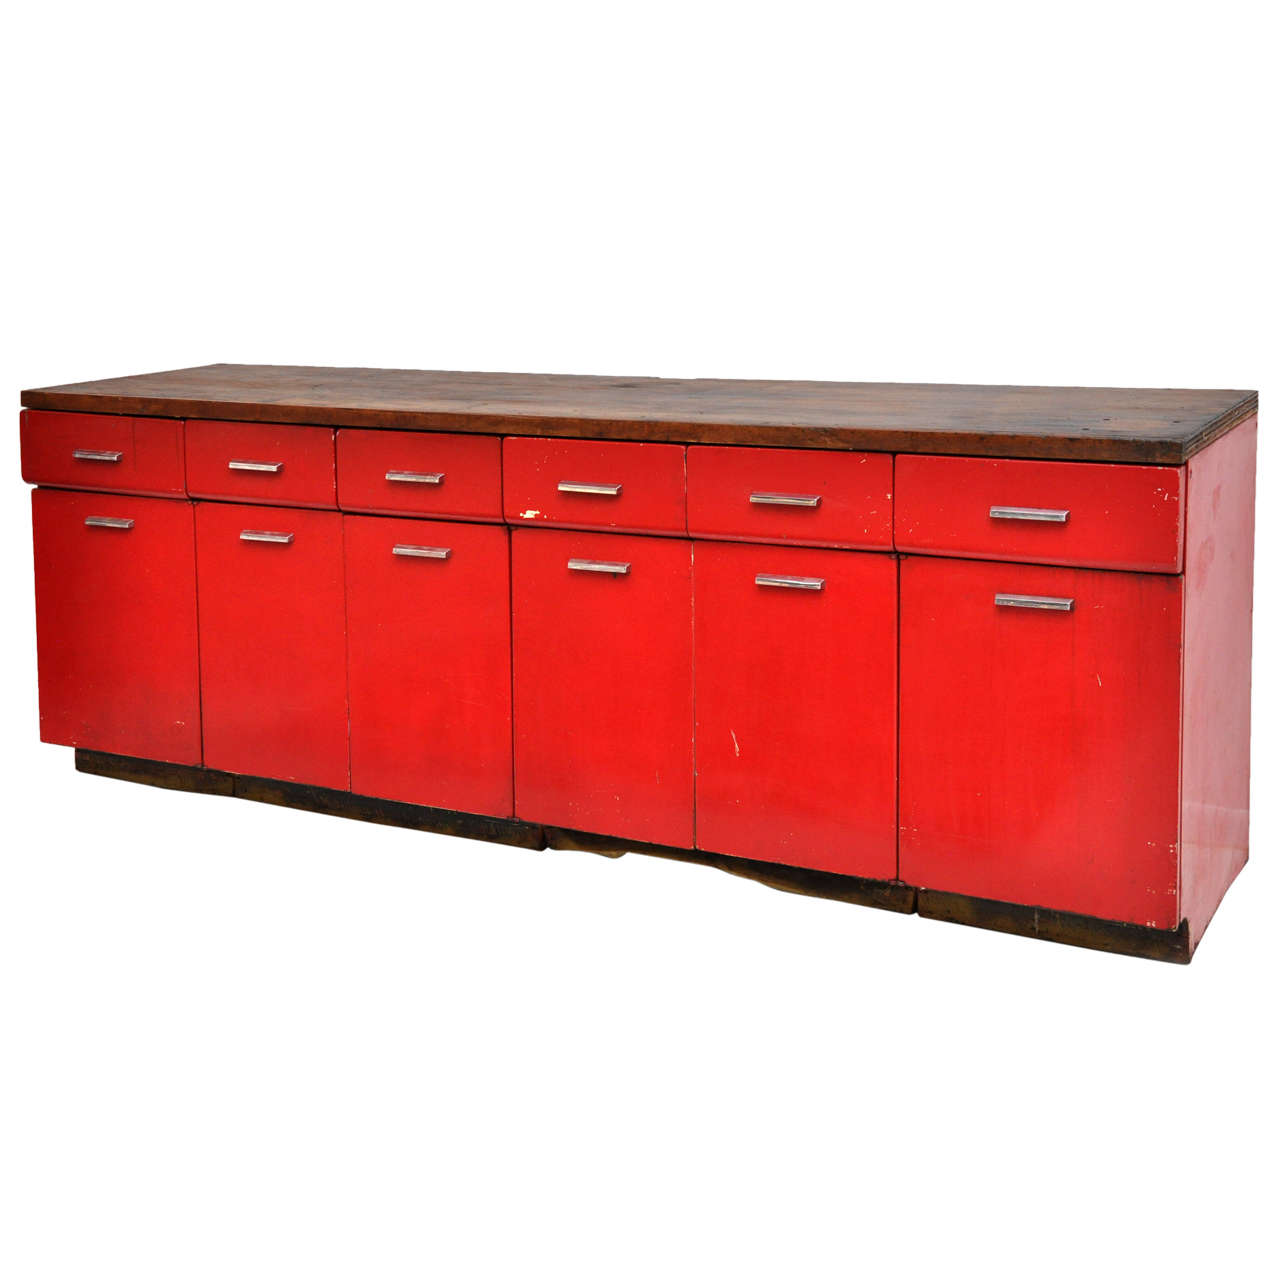 Mid century red painted steel industrial cabinet at 1stdibs for Best mid priced kitchen cabinets